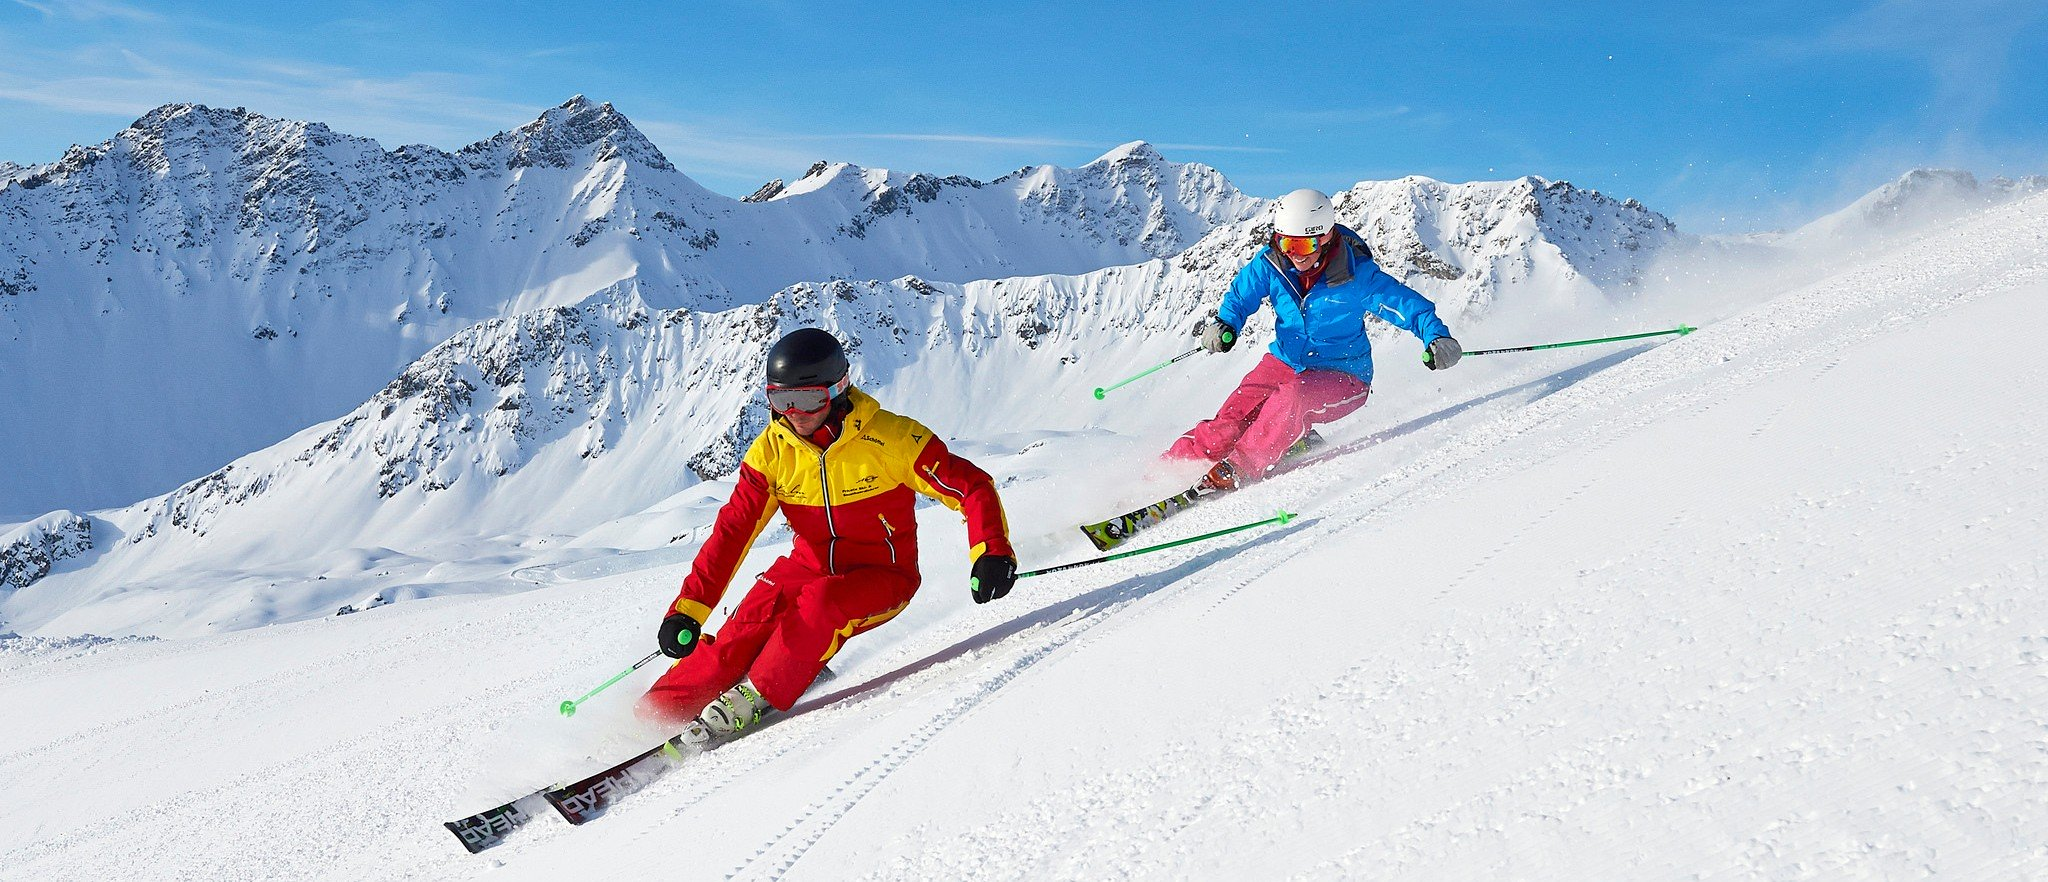 Two skiers show perfect skiing technique on the snowy slopes.